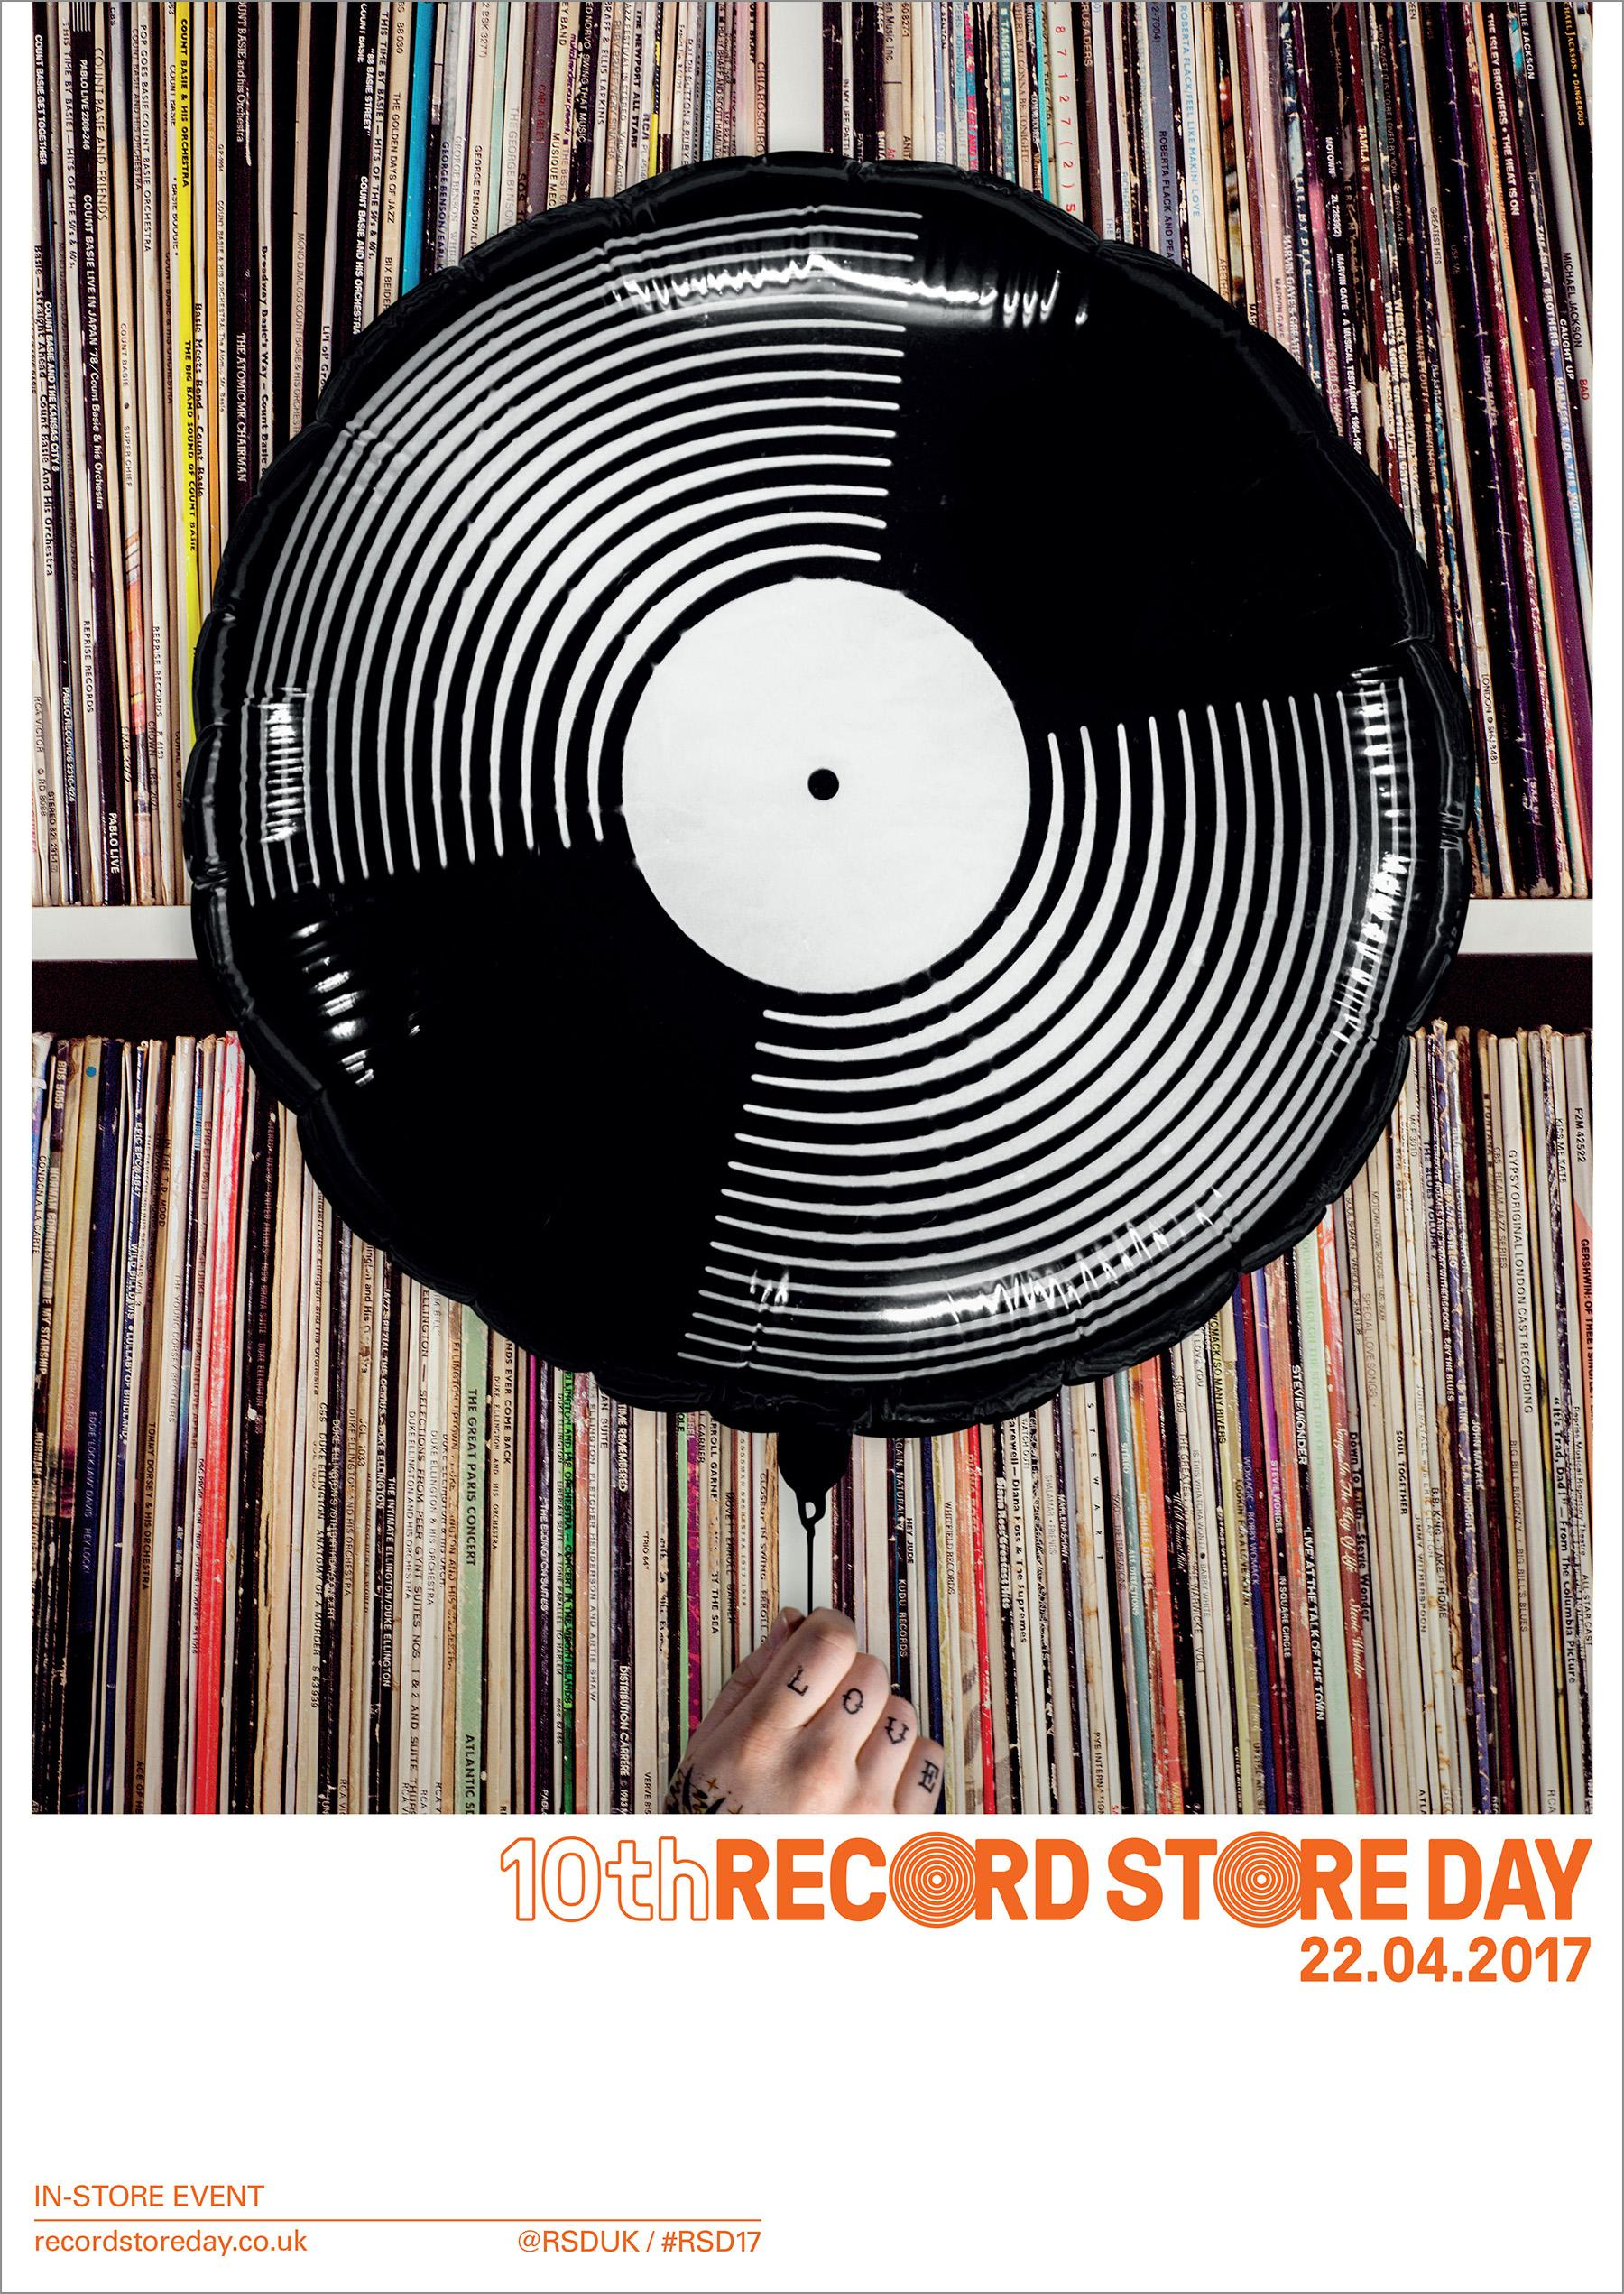 Record Store Day Experiential Ad - 10th Birthday